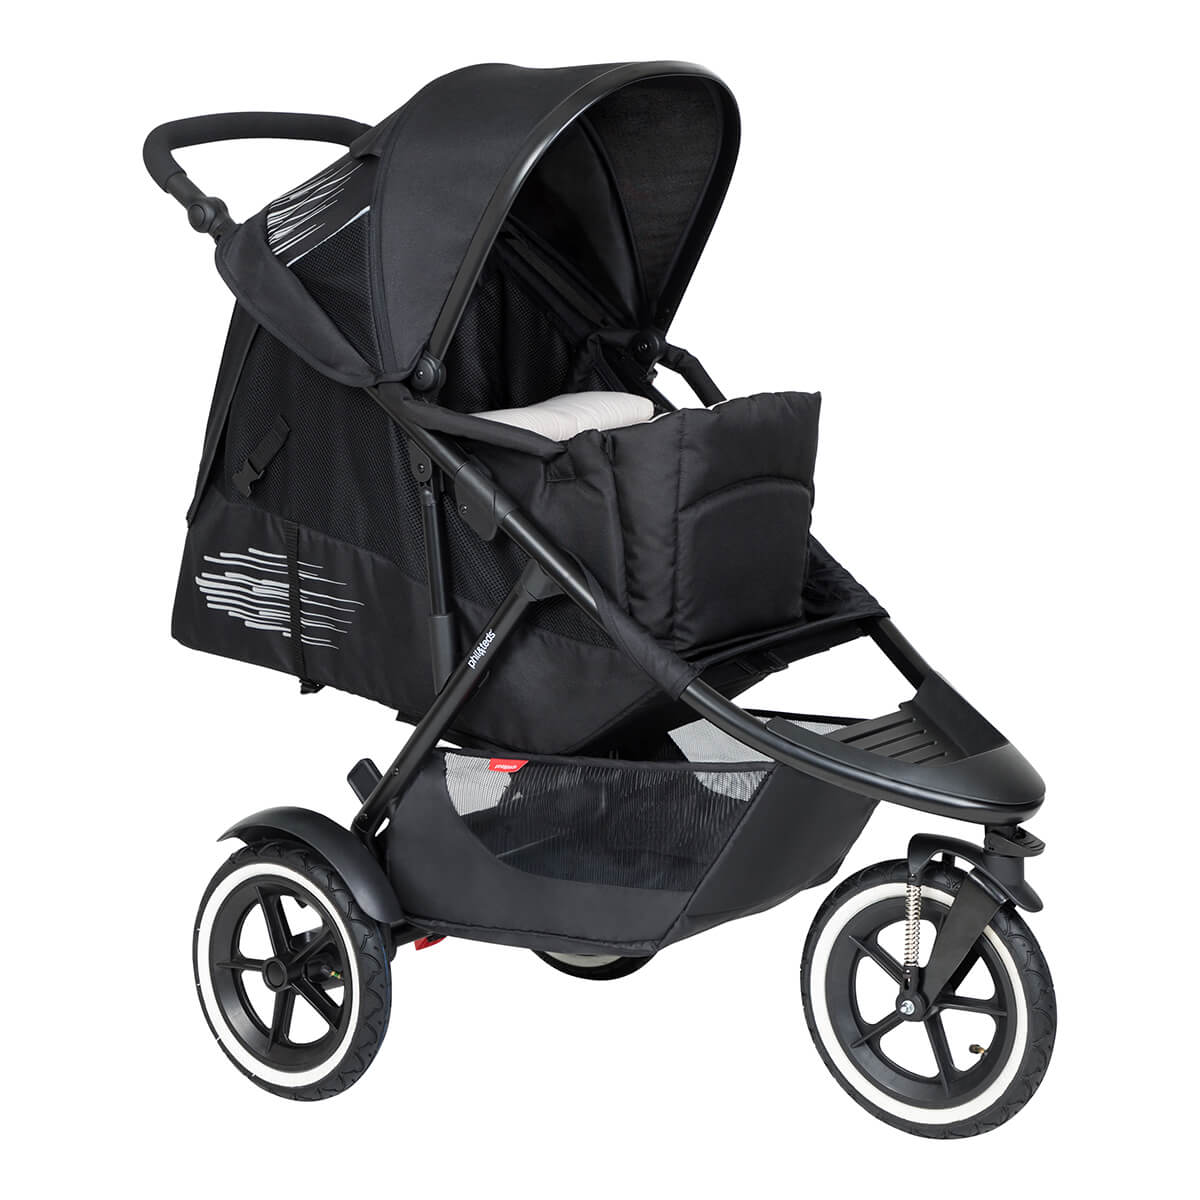 https://cdn.accentuate.io/4513462419552/19440099360952/philteds-sport-buggy-with-cocoon-full-recline-v1626486514308.jpg?1200x1200